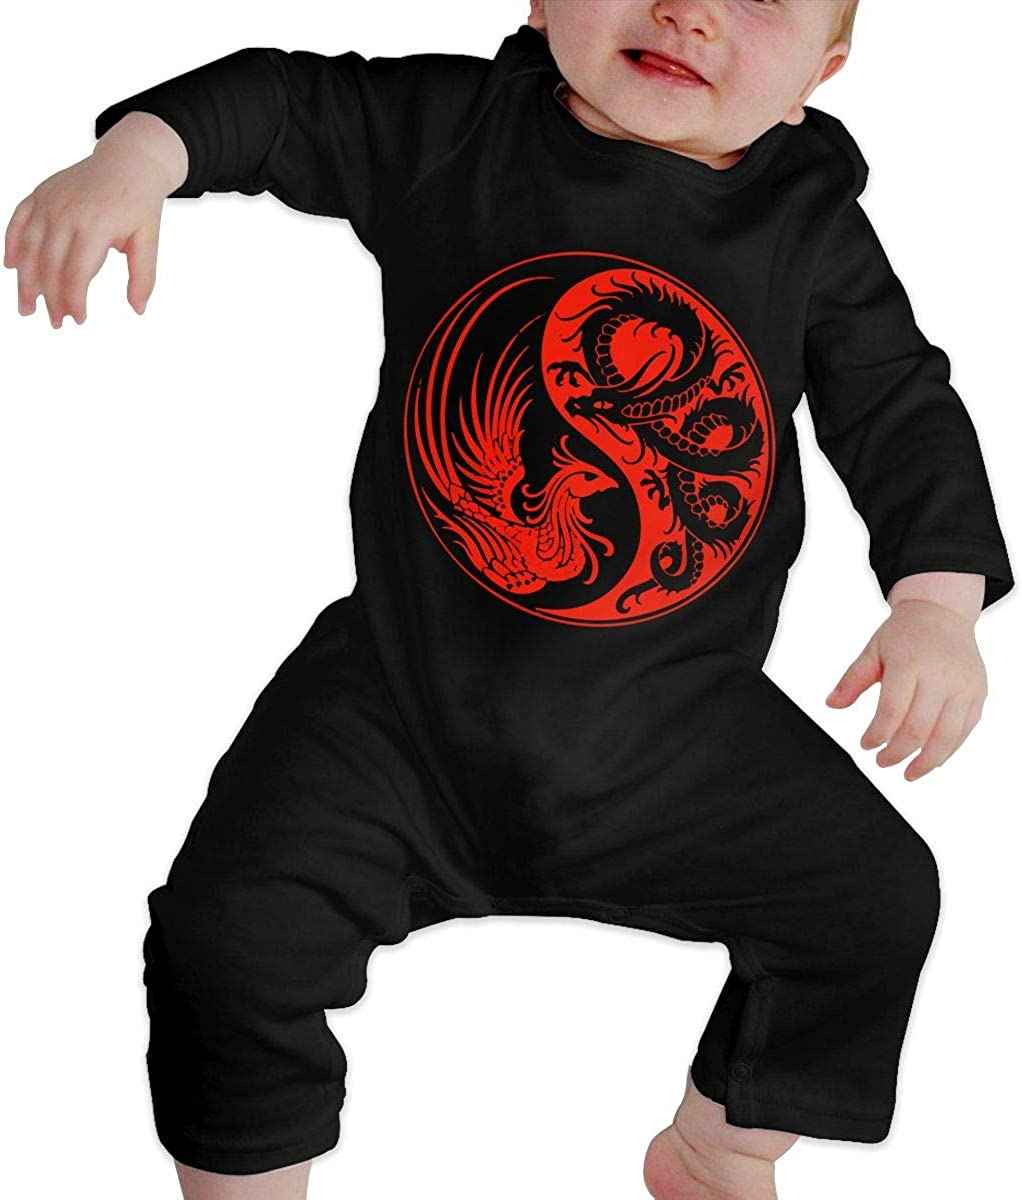 Unisex Baby Romper Jumpsuit Red and Black Dragon Organic One-Piece Kid Pajamas Clothes